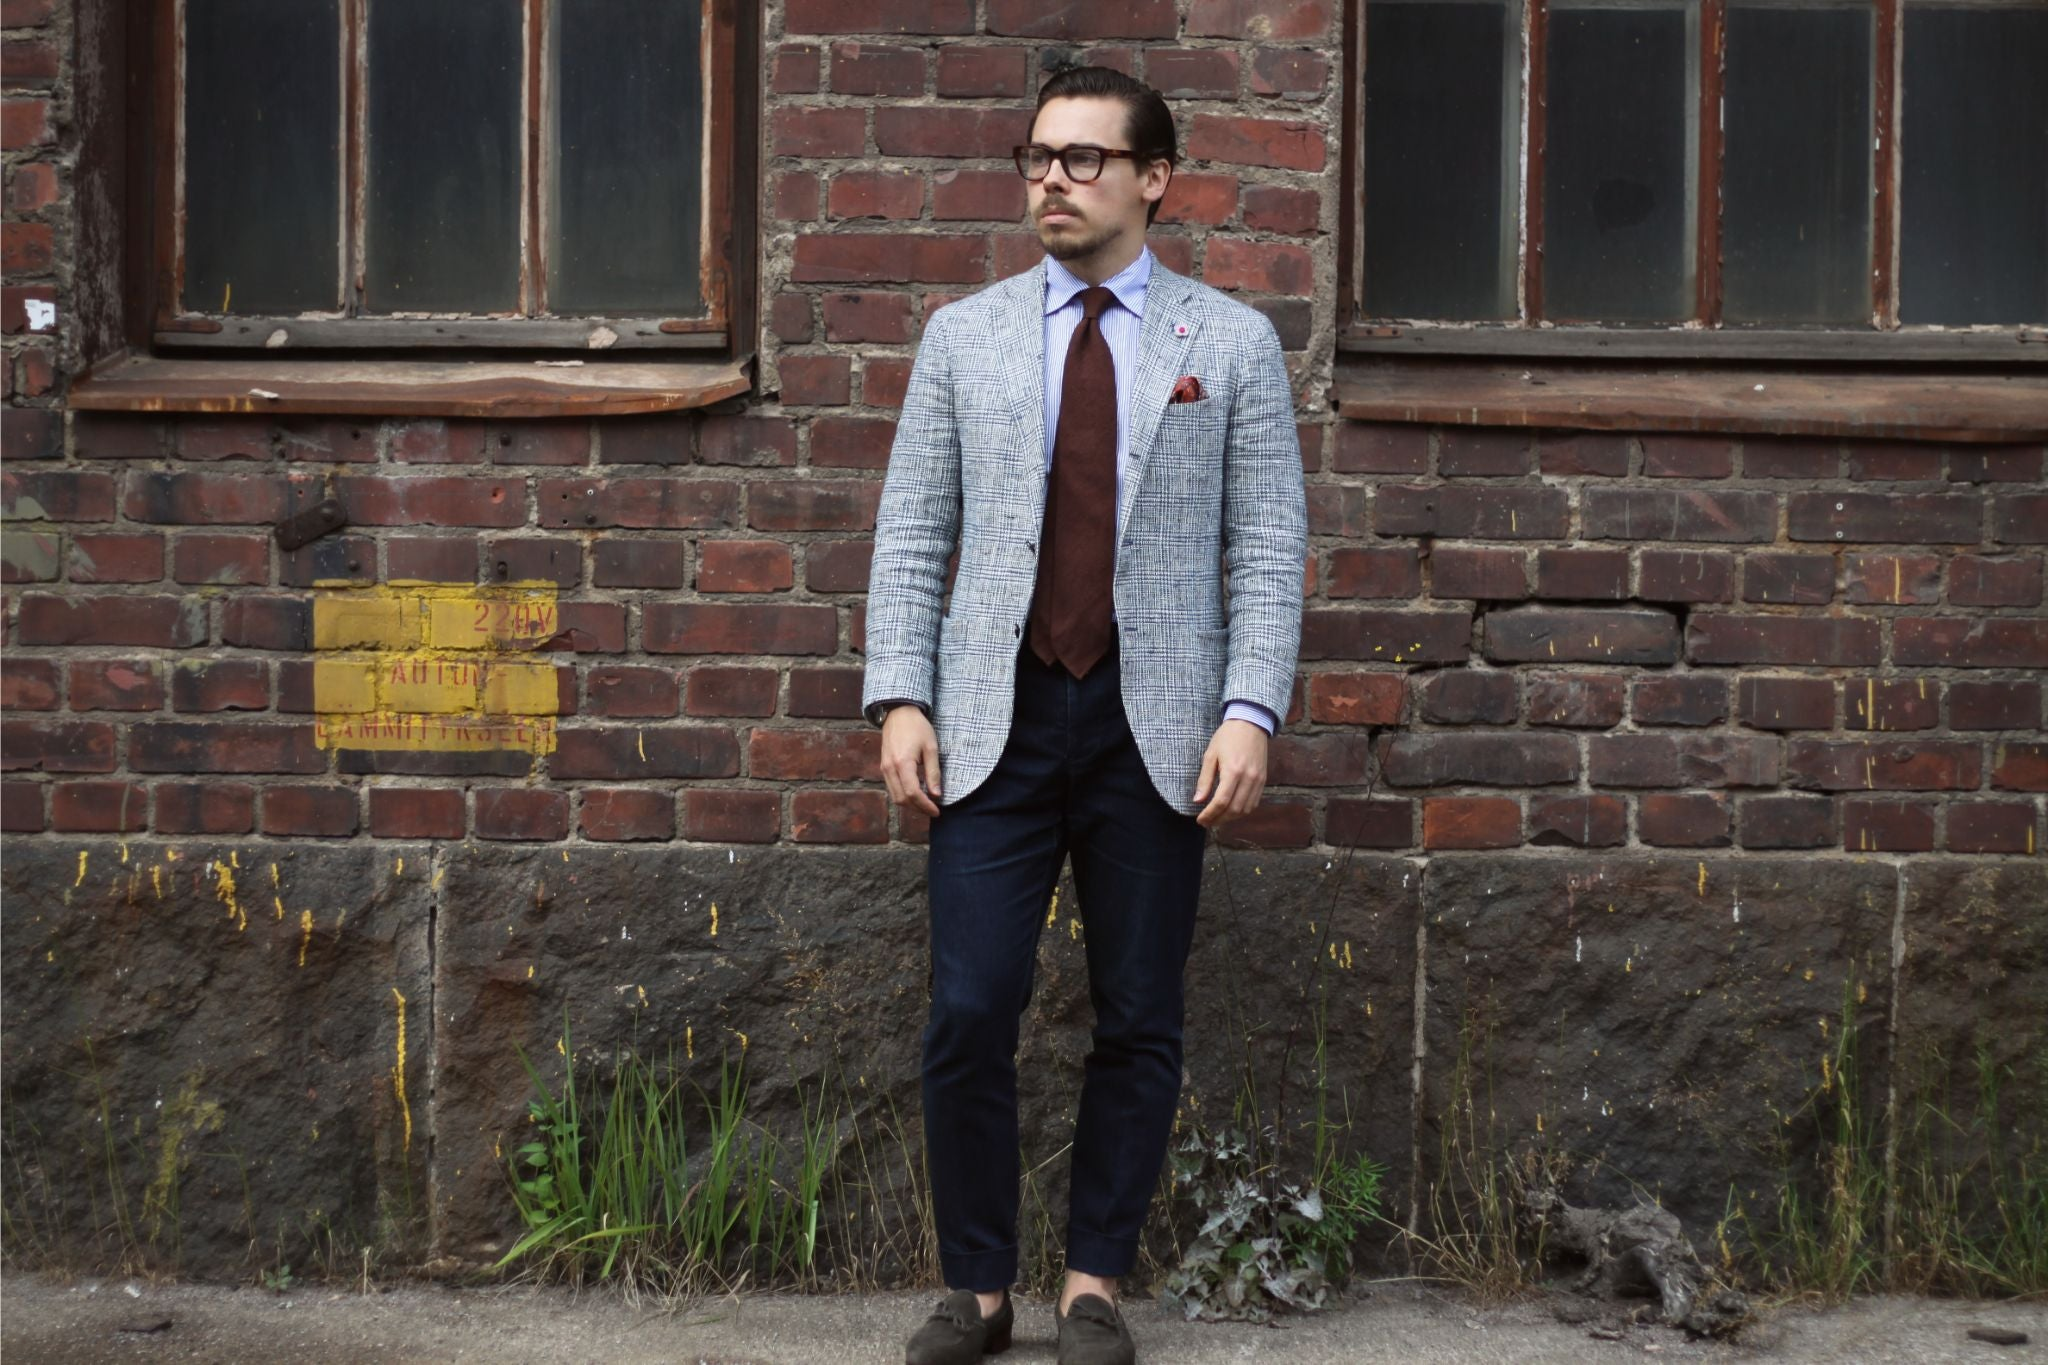 Viola milano shantung tie with Lardini sport coat and finealta denim